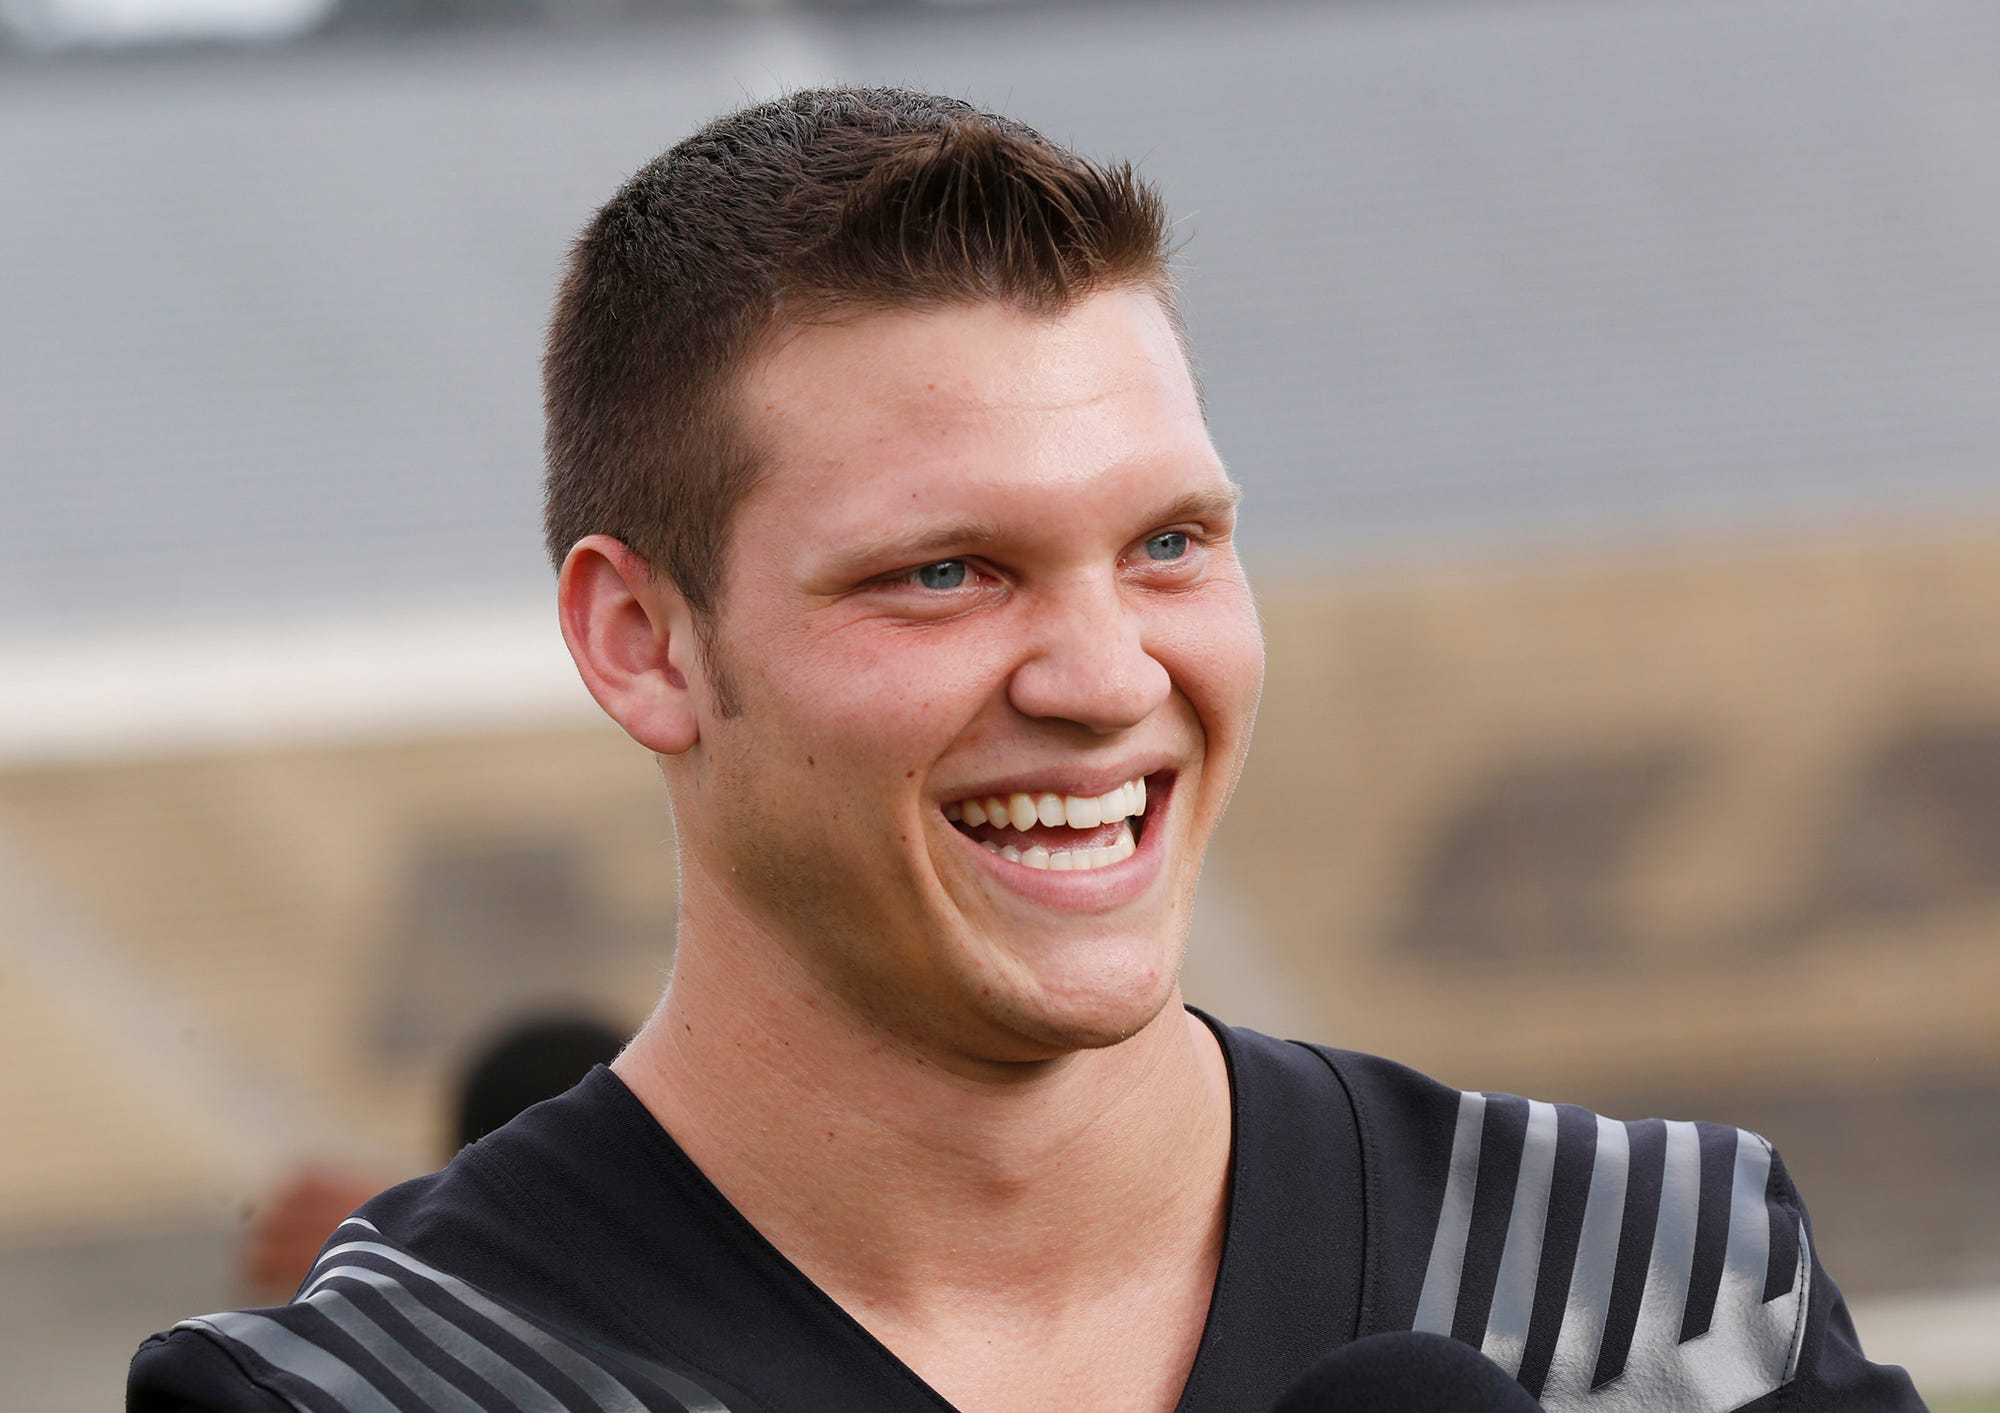 Quarterback Elijah Sindelar has a laugh as he meets with members of the media during Purdue football media day Friday, August 3, 2018, at Ross-Ade Stadium.